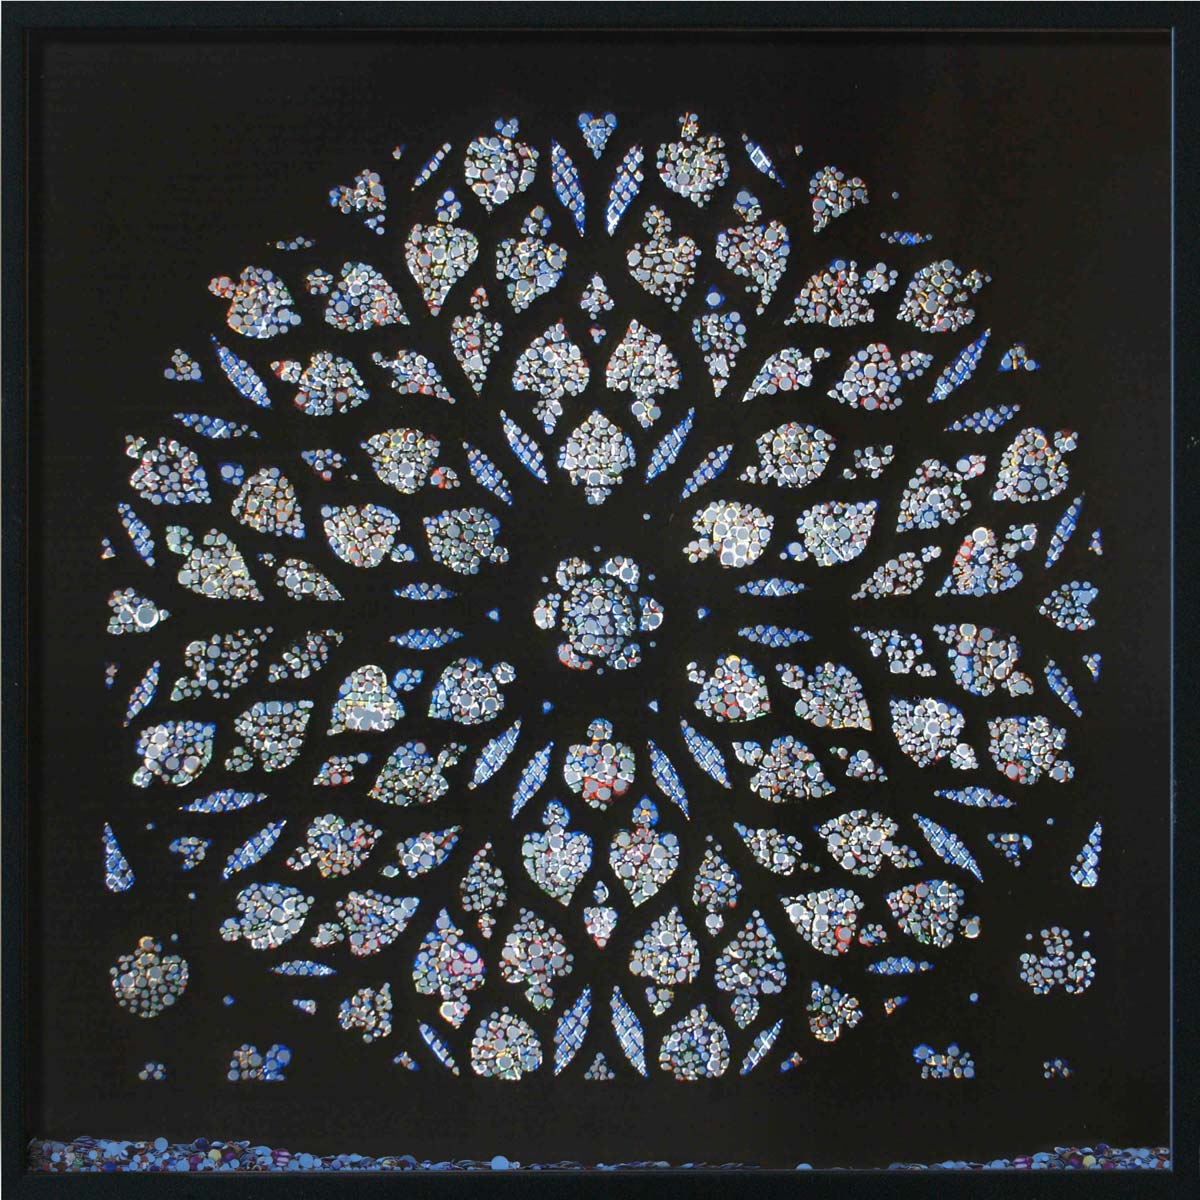 Revelation, Sainte Chapelle Paris, © 2011, Perforated inkjet print, loose confetti produced by the perforation process, each 50 x 50 cm